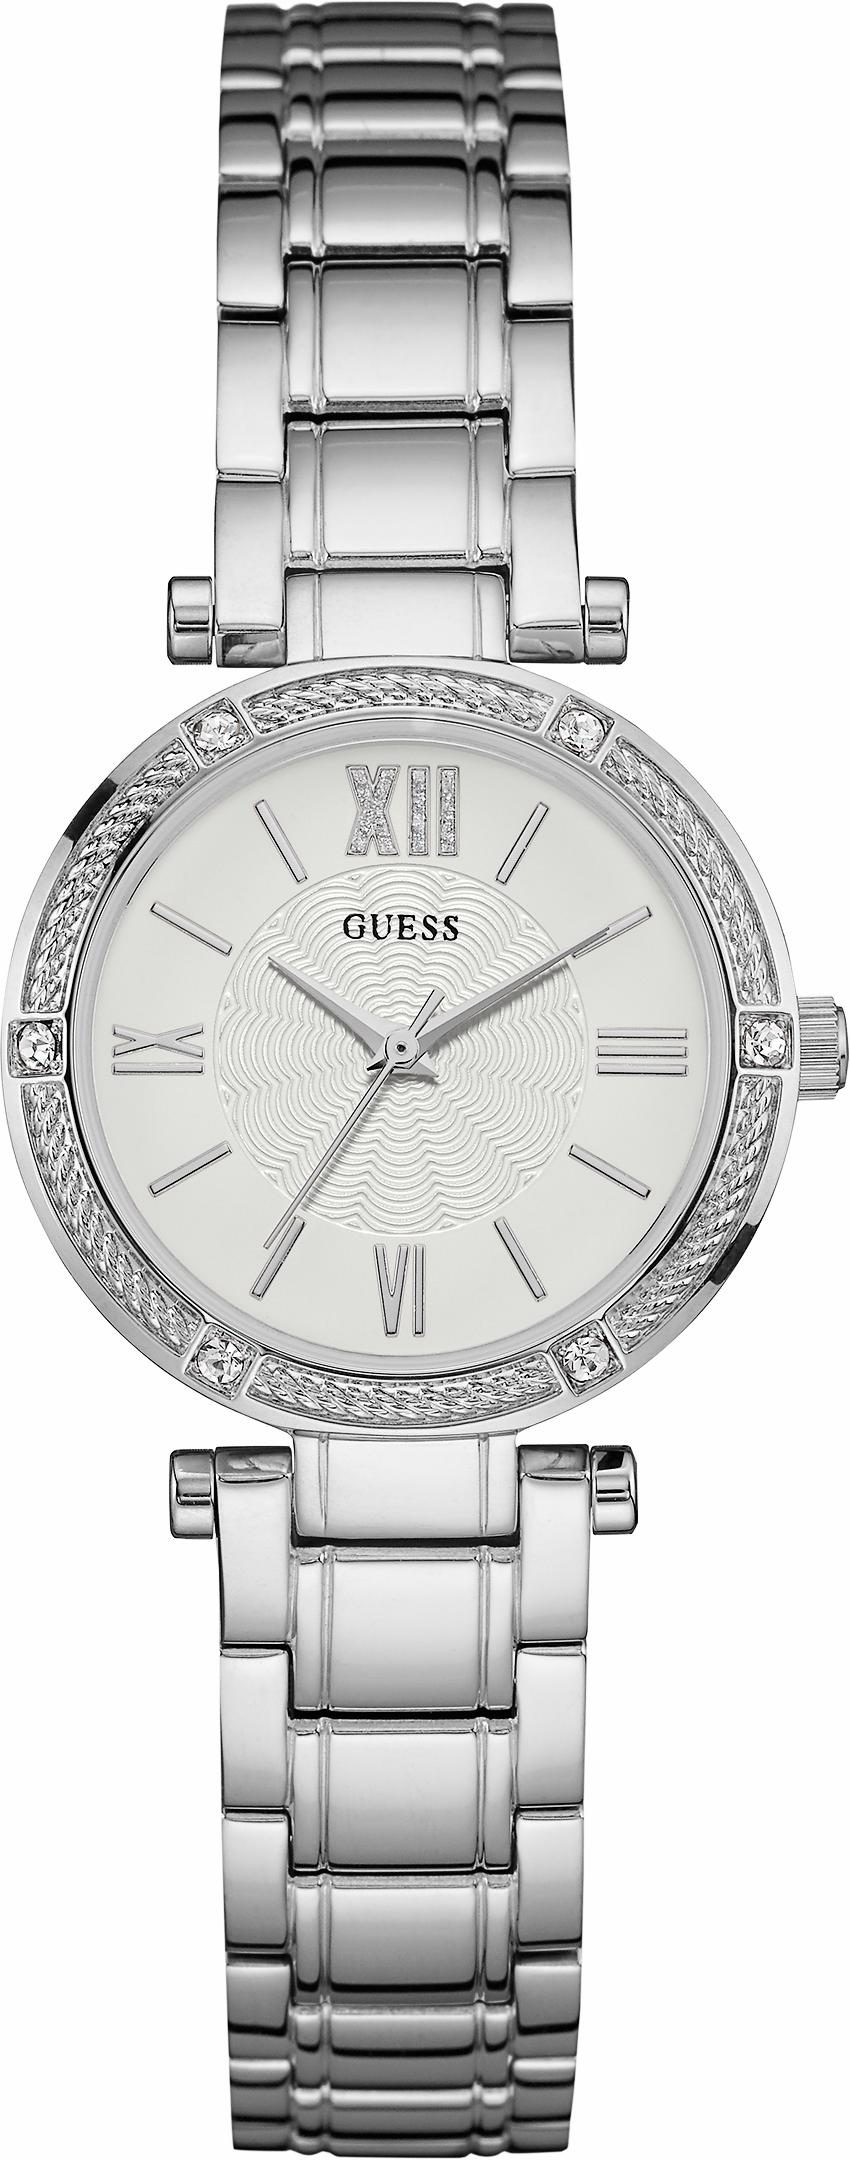 Guess Quarzuhr »W0767L1«